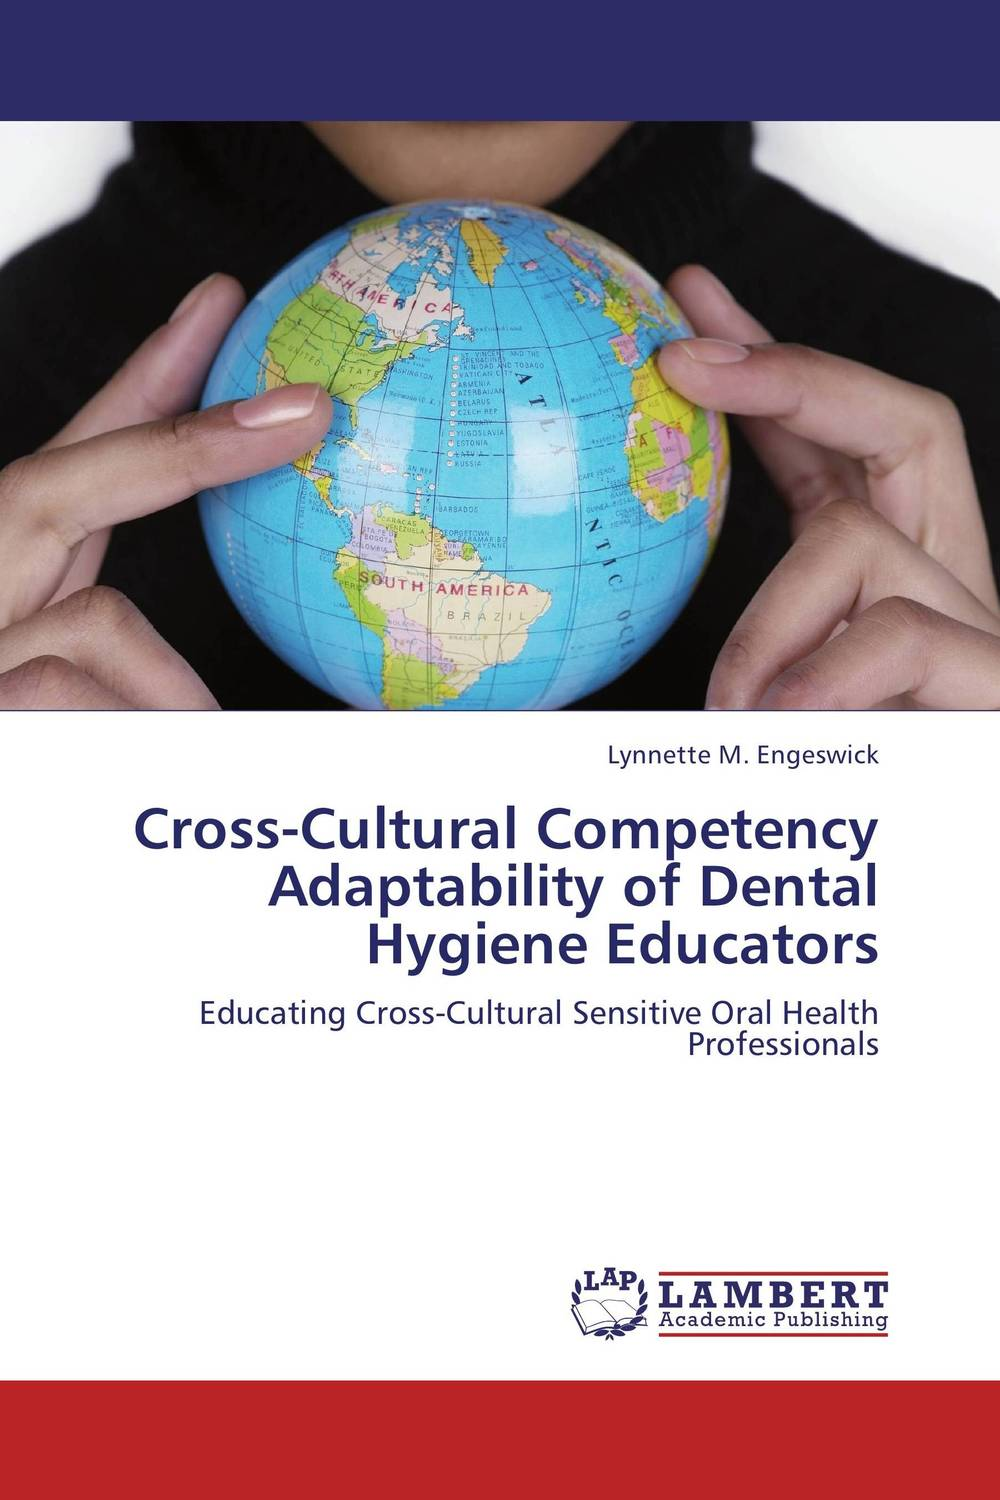 Cross-Cultural Competency Adaptability of Dental Hygiene Educators